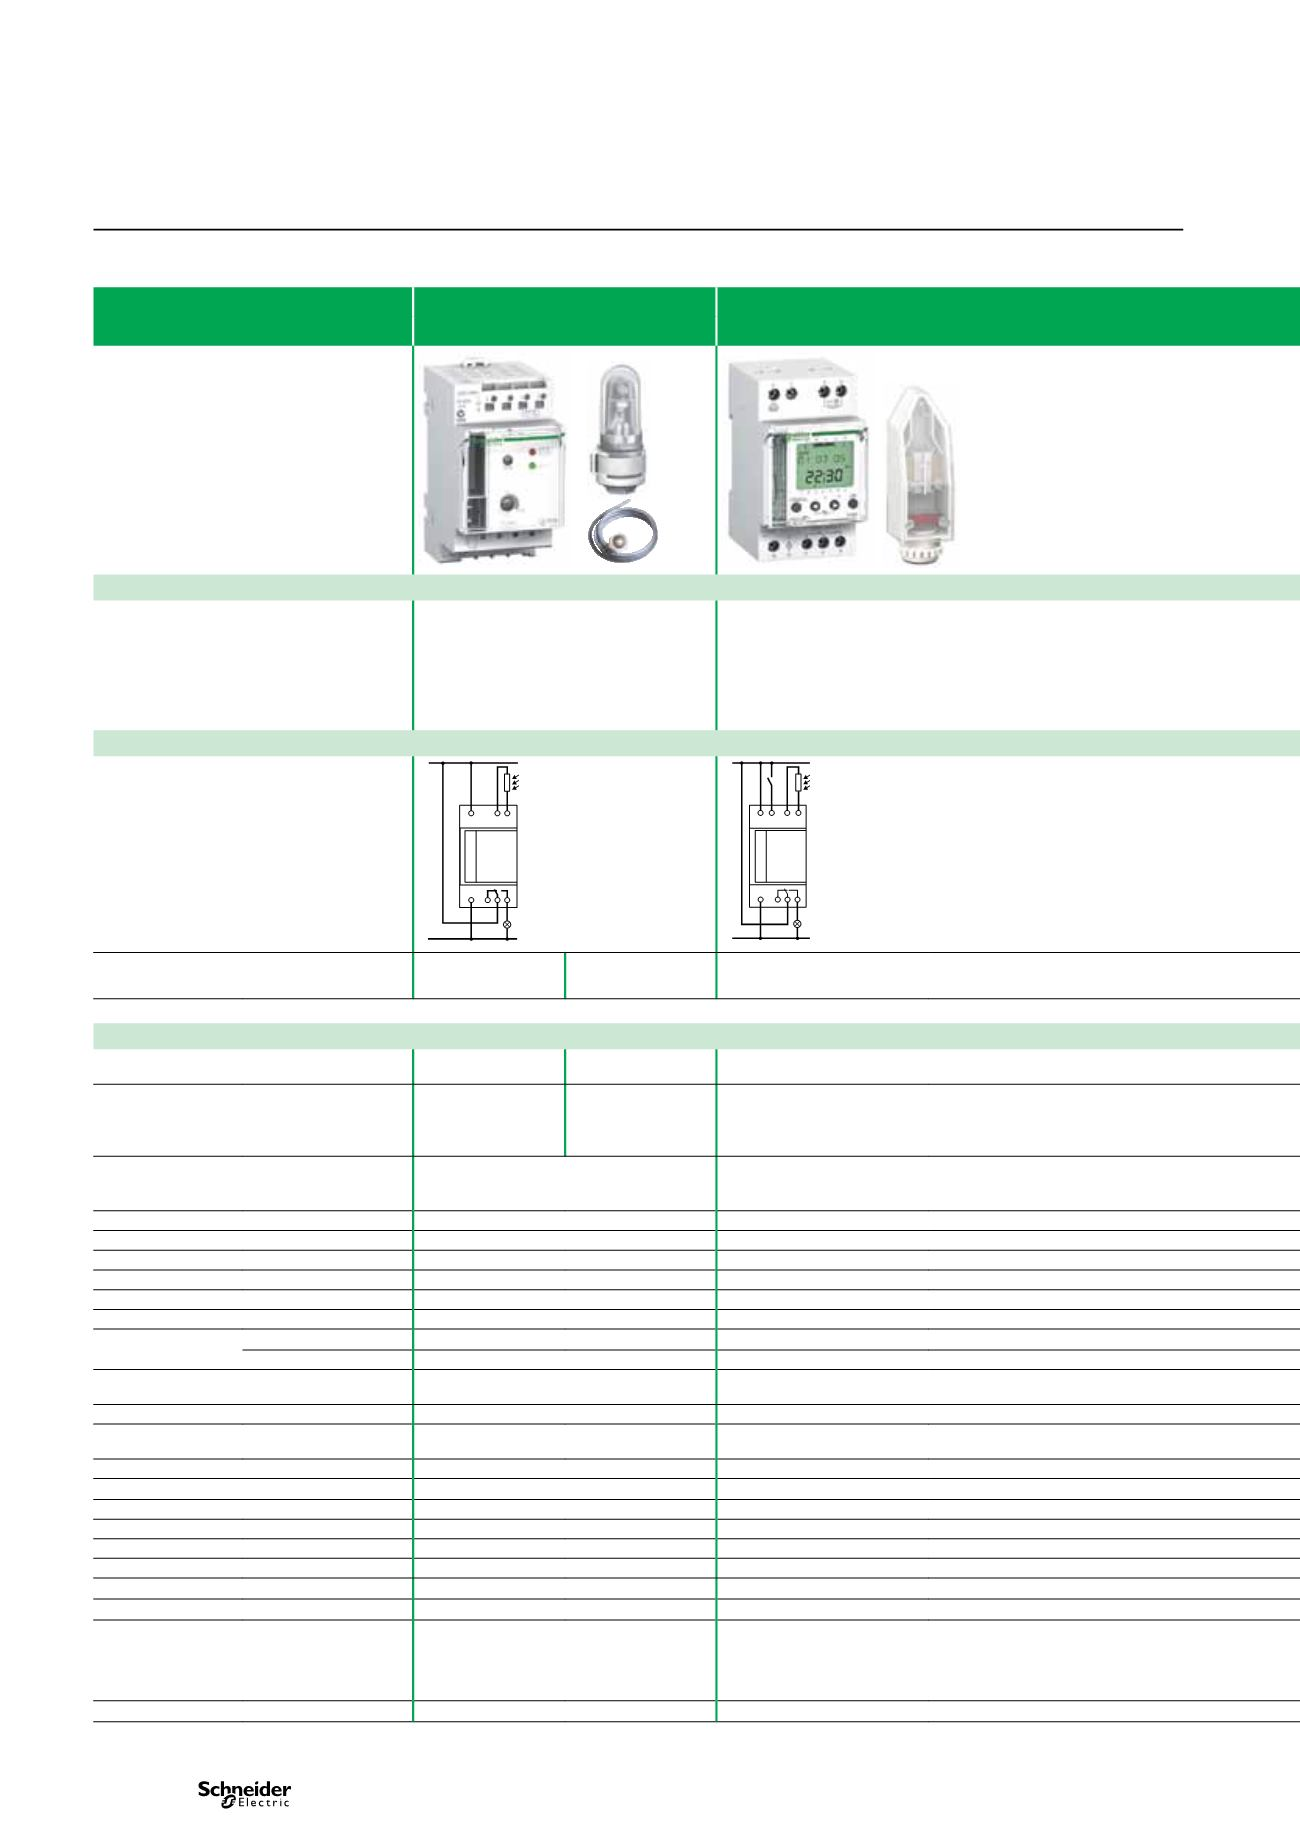 schneider star delta starter wiring diagram images example for wiring diagram also contactor furthermore schneider